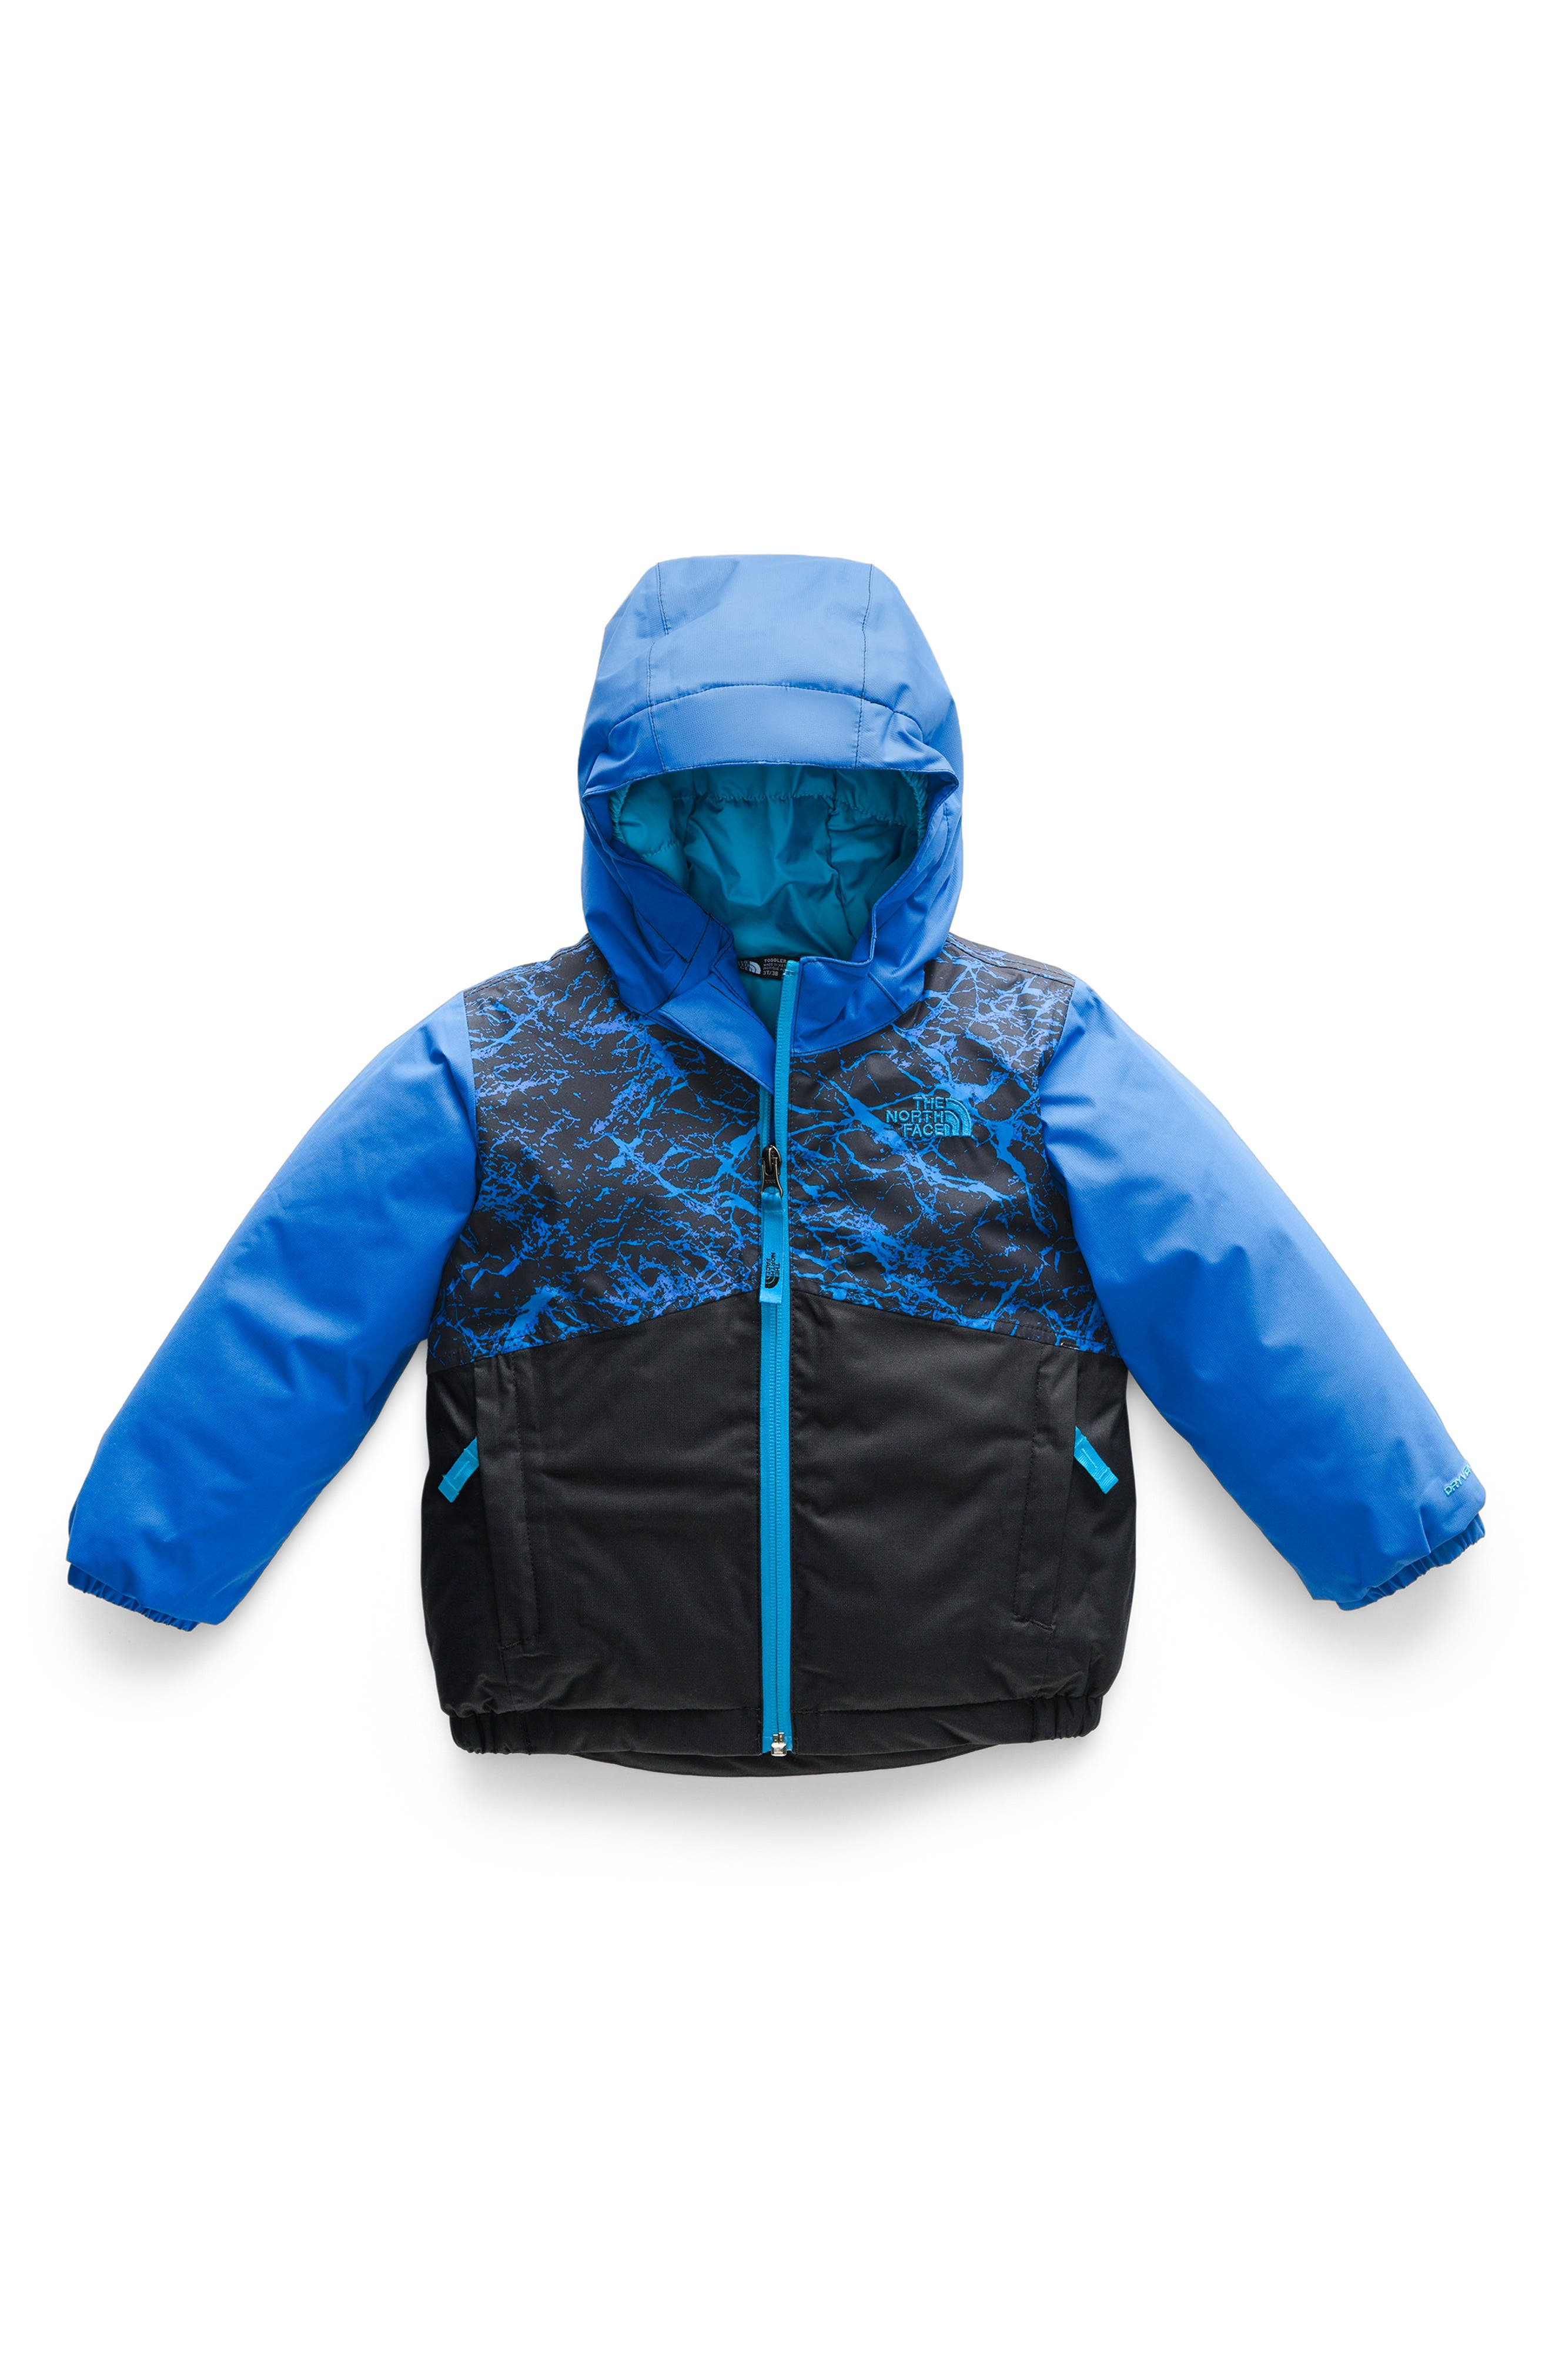 Boys The North Face Snowquest Waterproof Insulated Winter Jacket Size 6  Blue